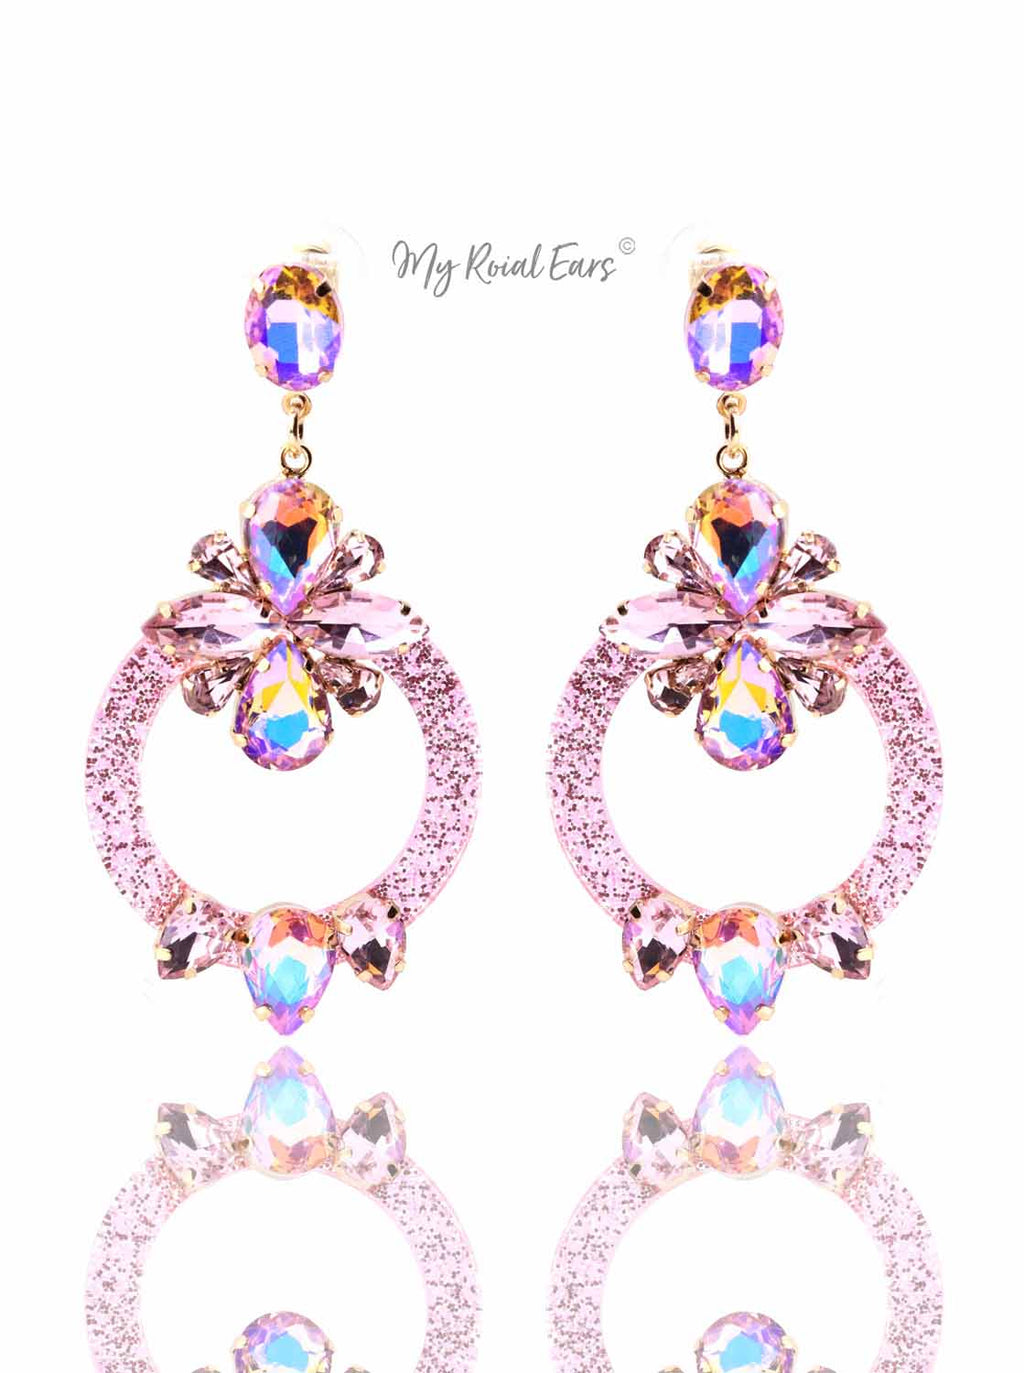 Catherine B Pink - My Roial Ears LTD